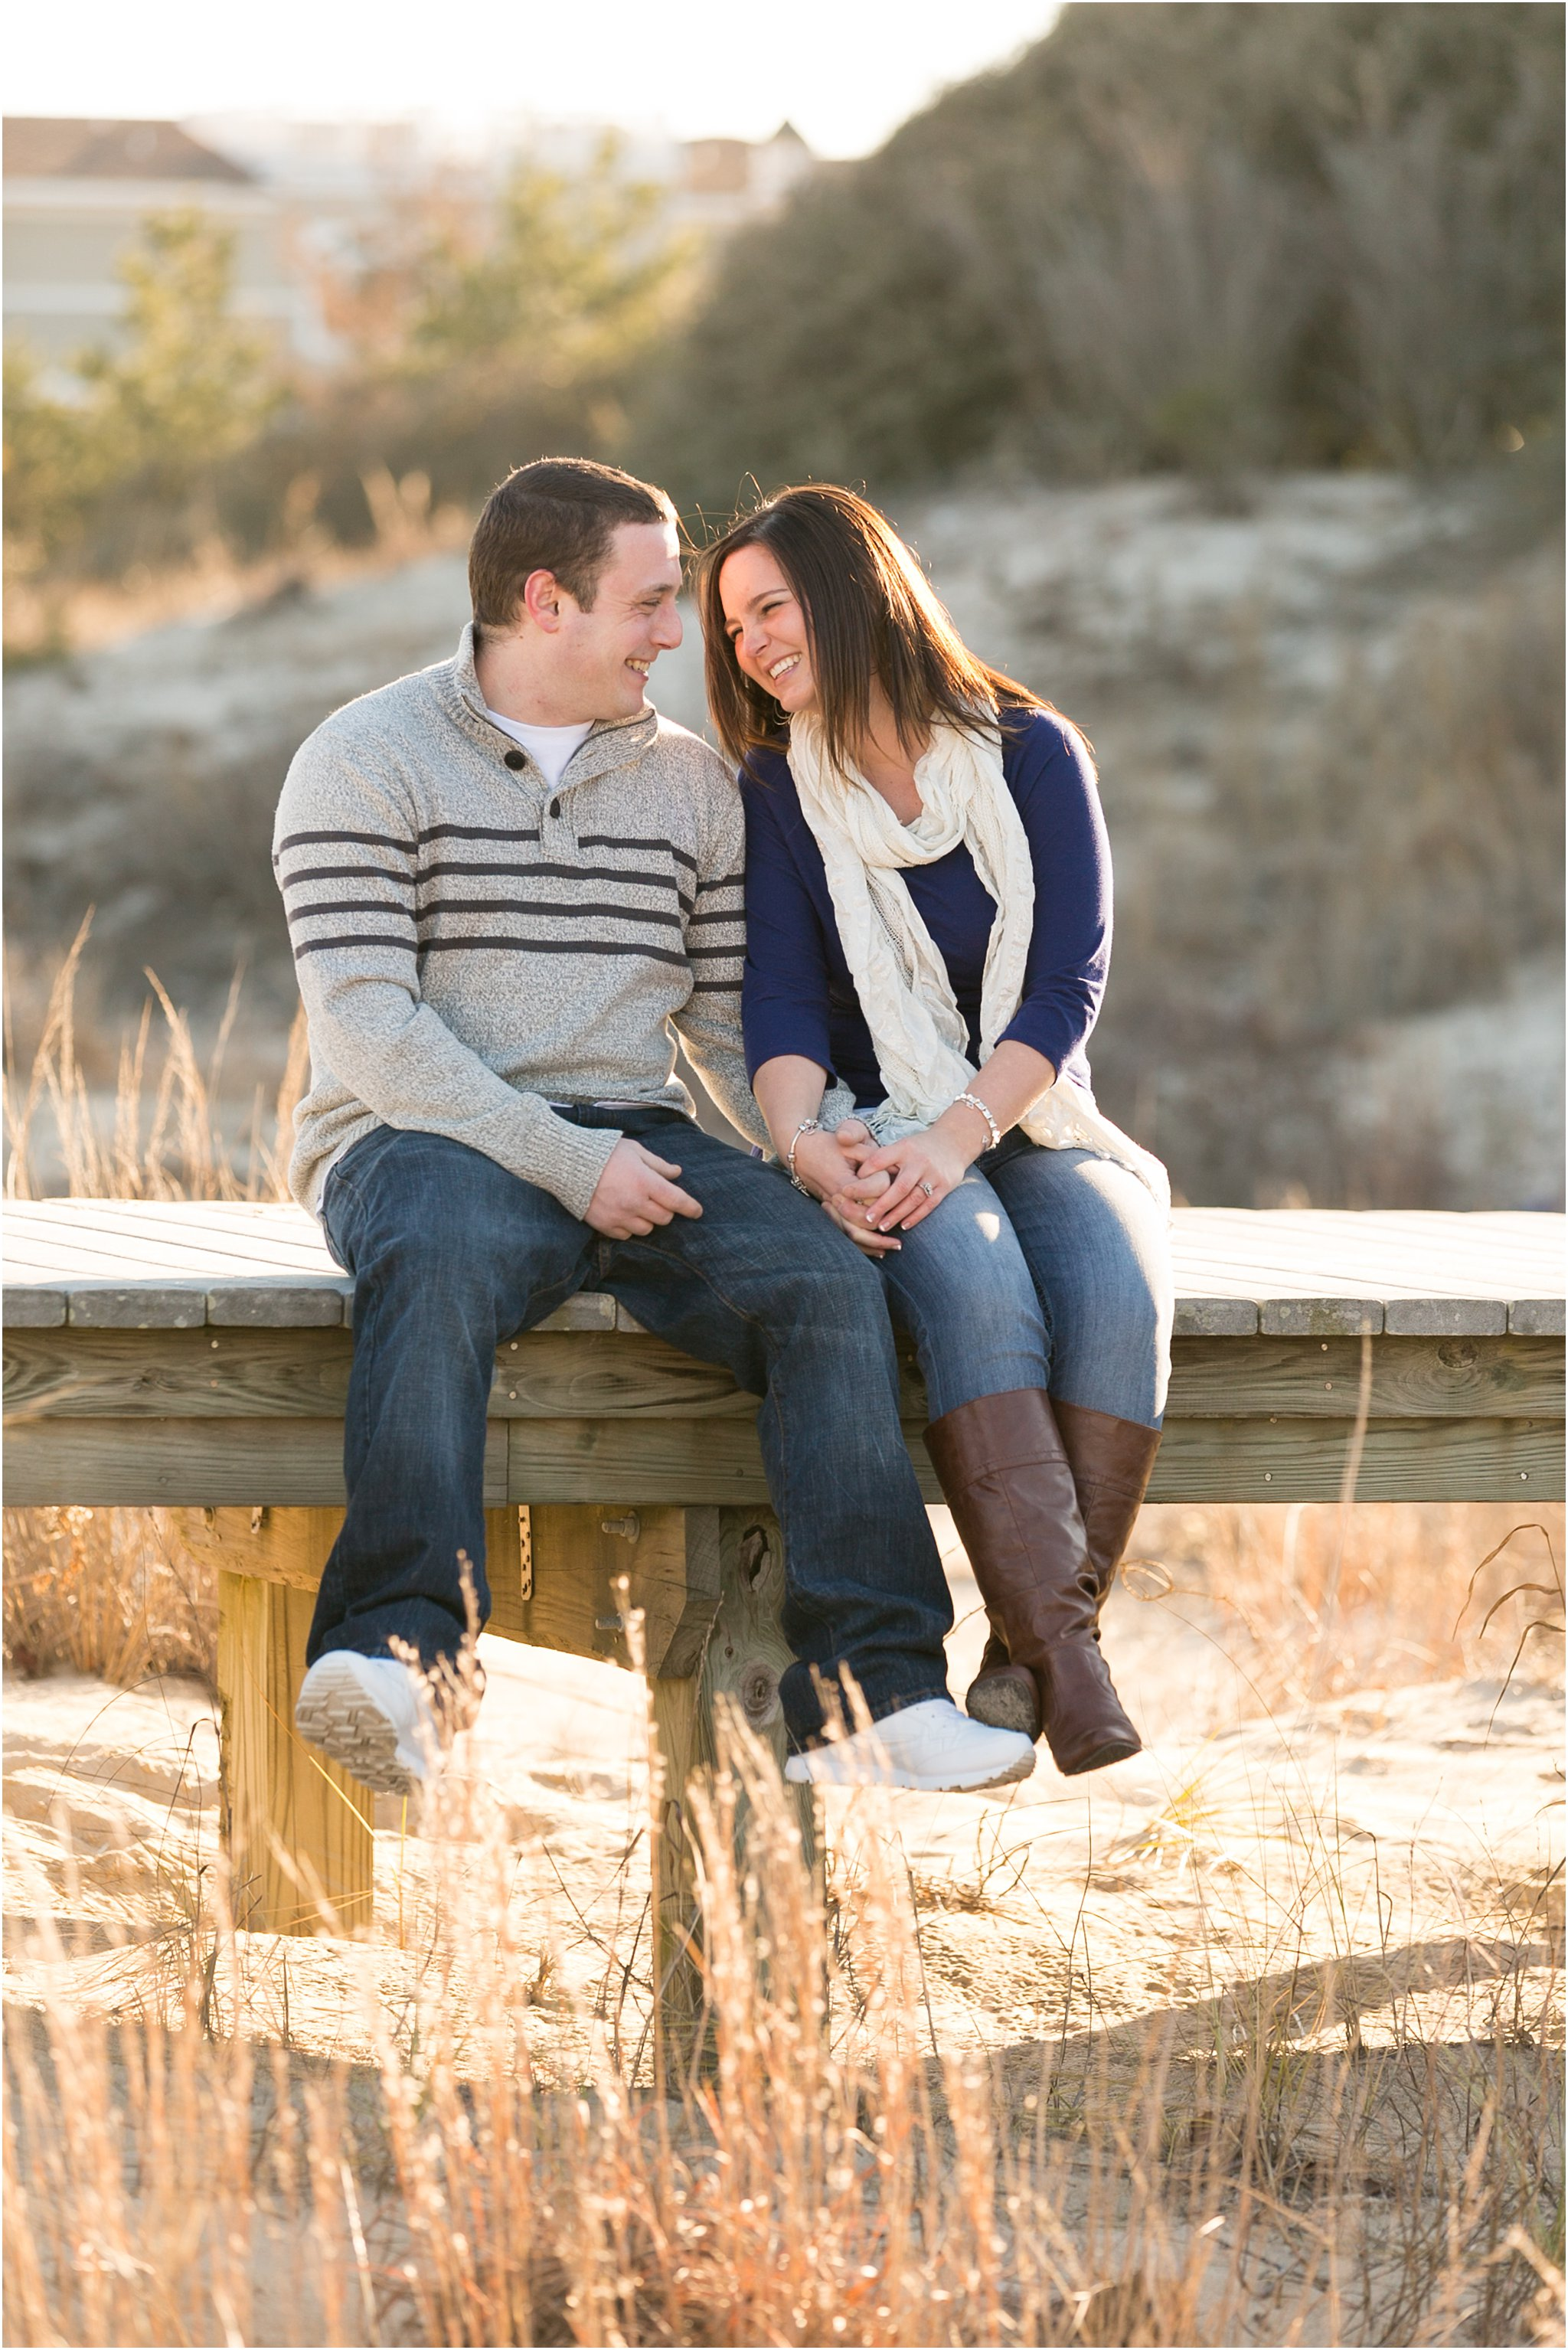 jessica_ryan_photography_virginia_beach_virginia_engagements_engagement_photographer_candid_1031